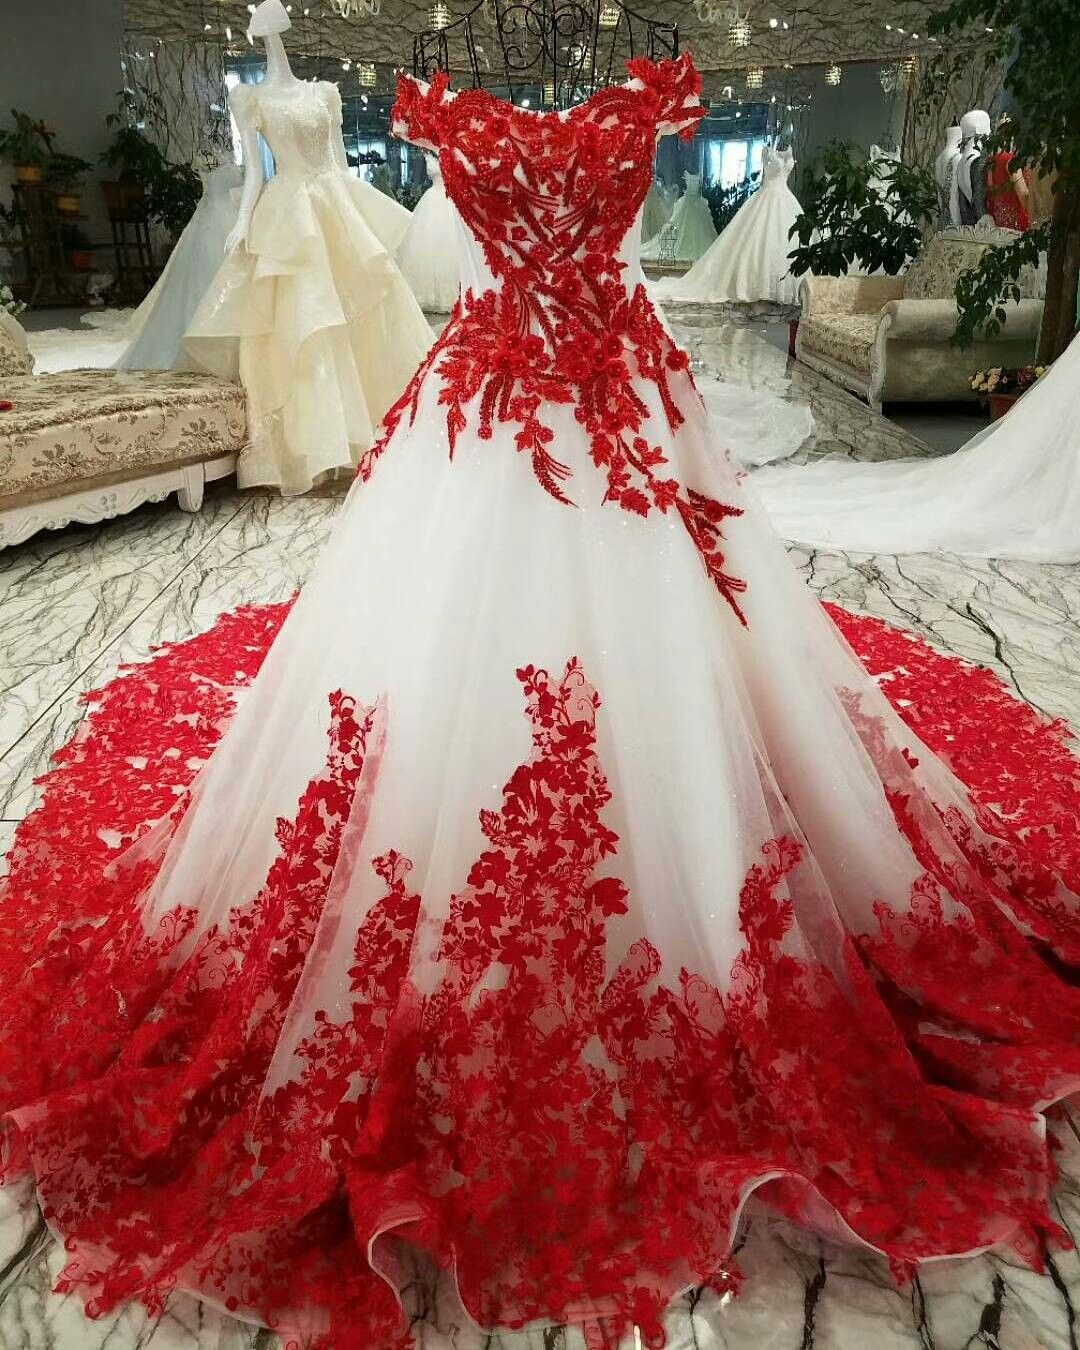 Red And White Ballgown Wedding Dress Ball Gowns Wedding Red Wedding Dresses Ball Gown Wedding Dress